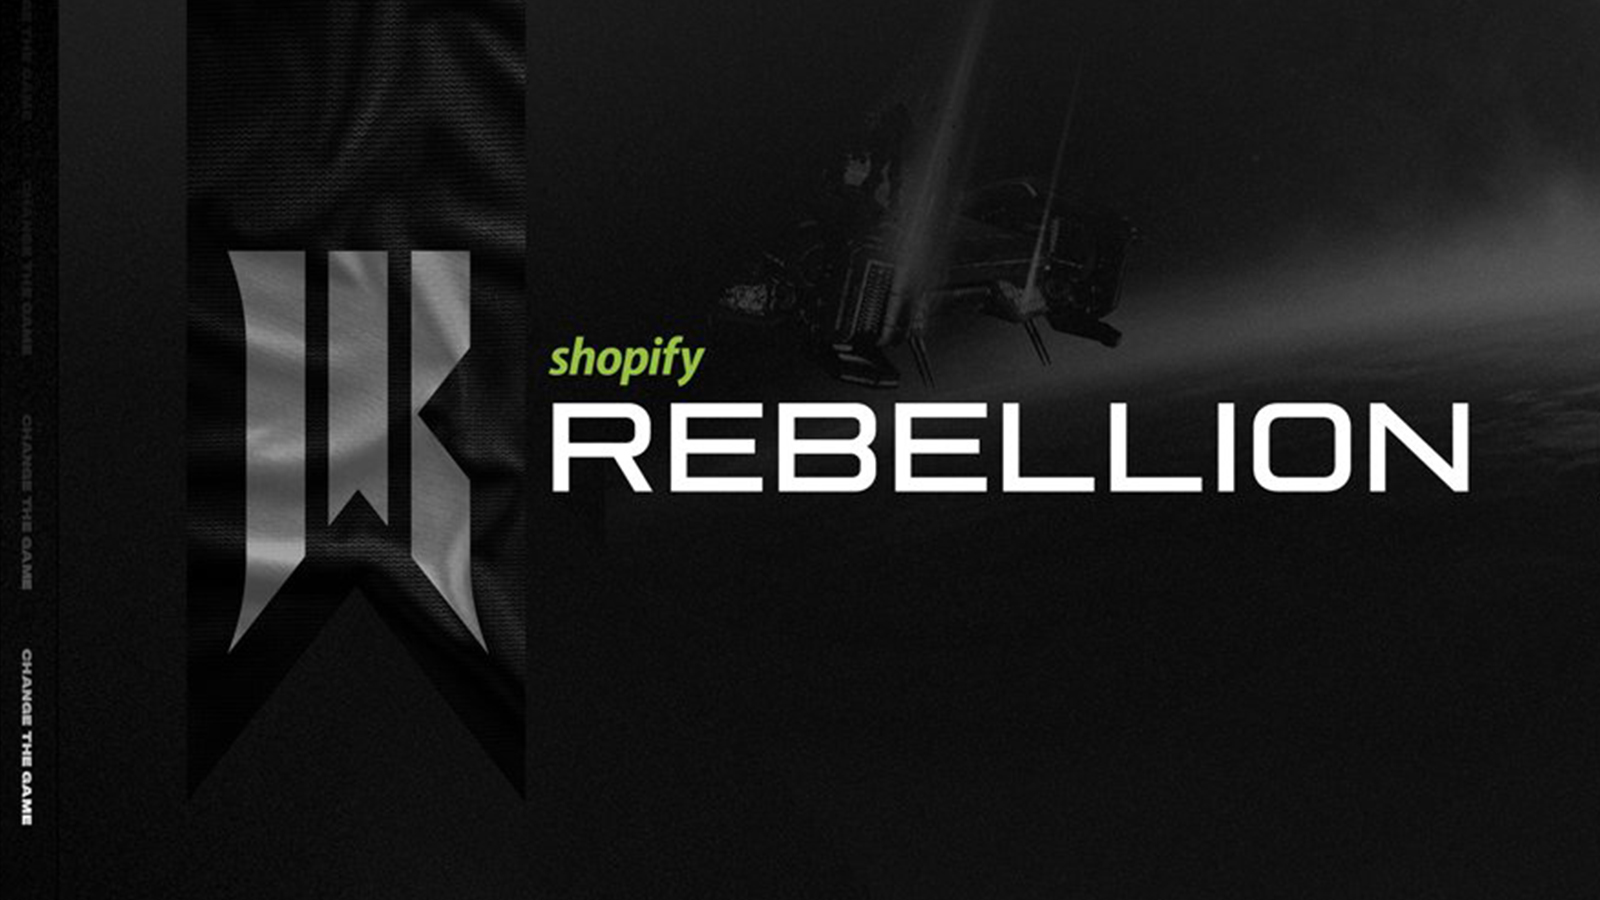 Shopify Rebellion logo